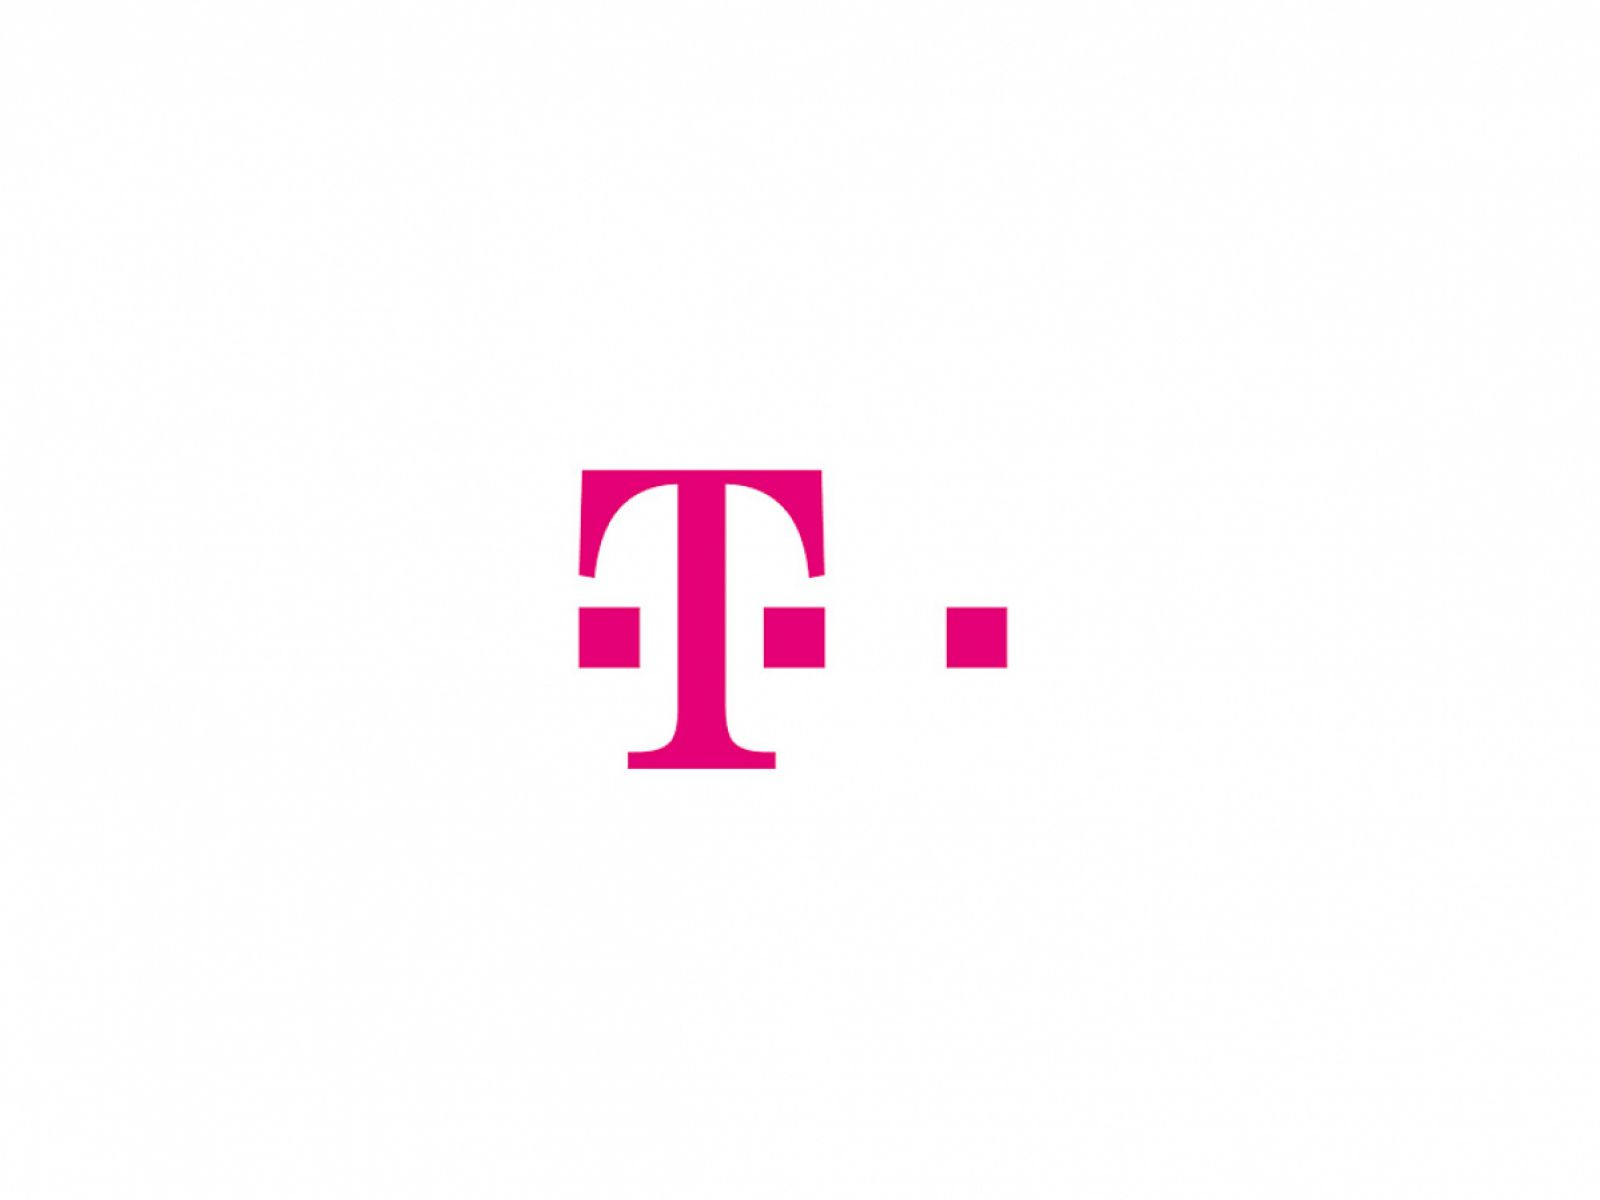 Telekom Romania closes the selling transaction for the land in Floreasca area in Bucharest